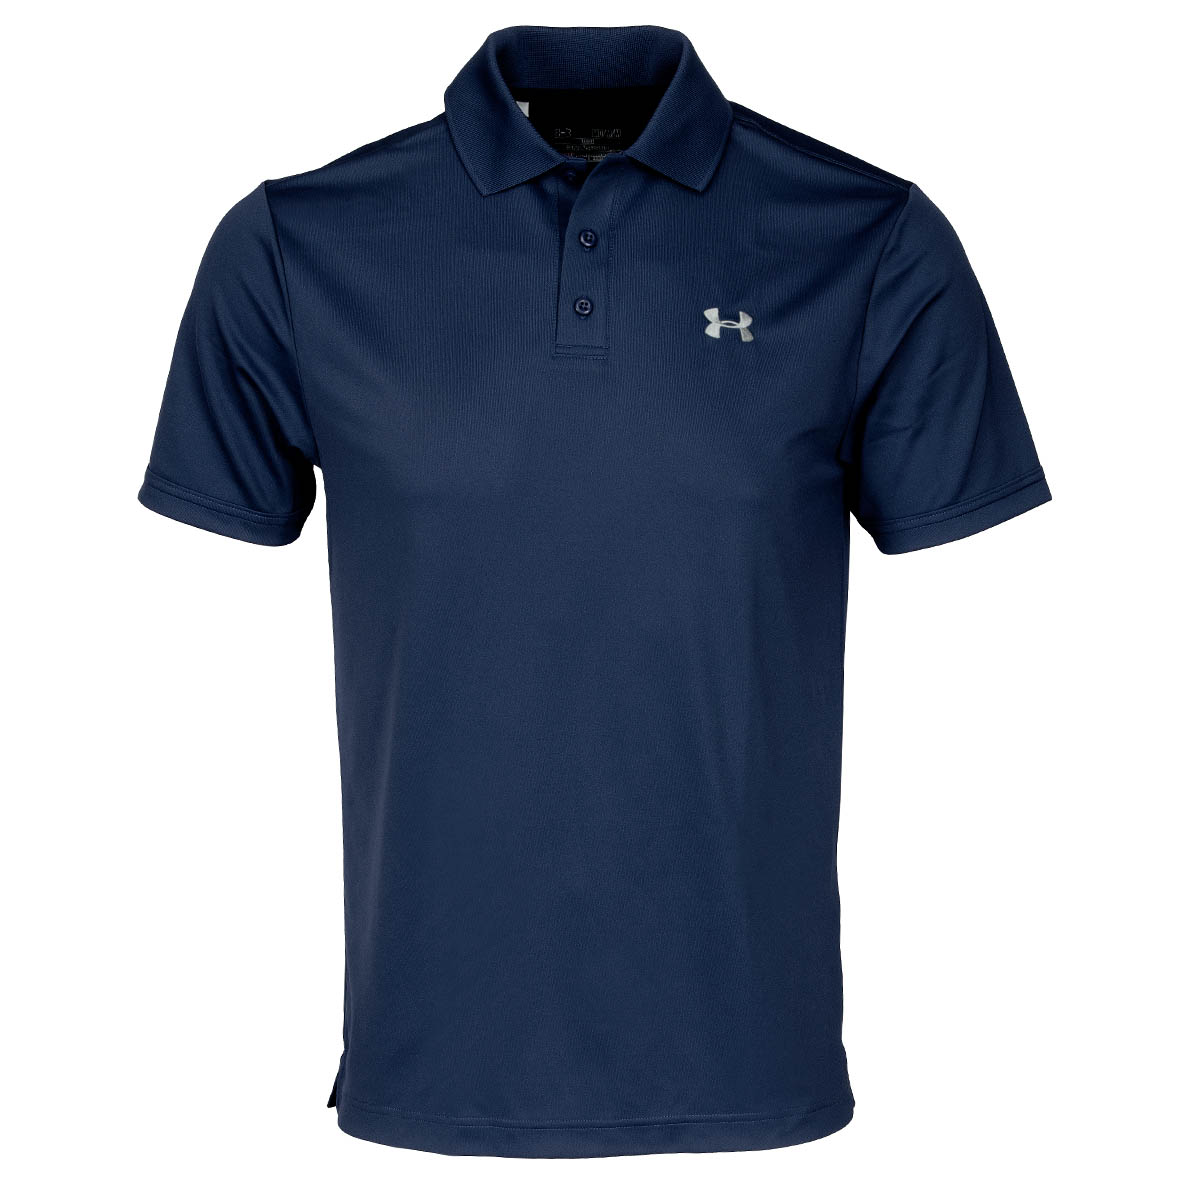 Under armour performance polo shirt academy steel for Under armour embroidered polo shirts